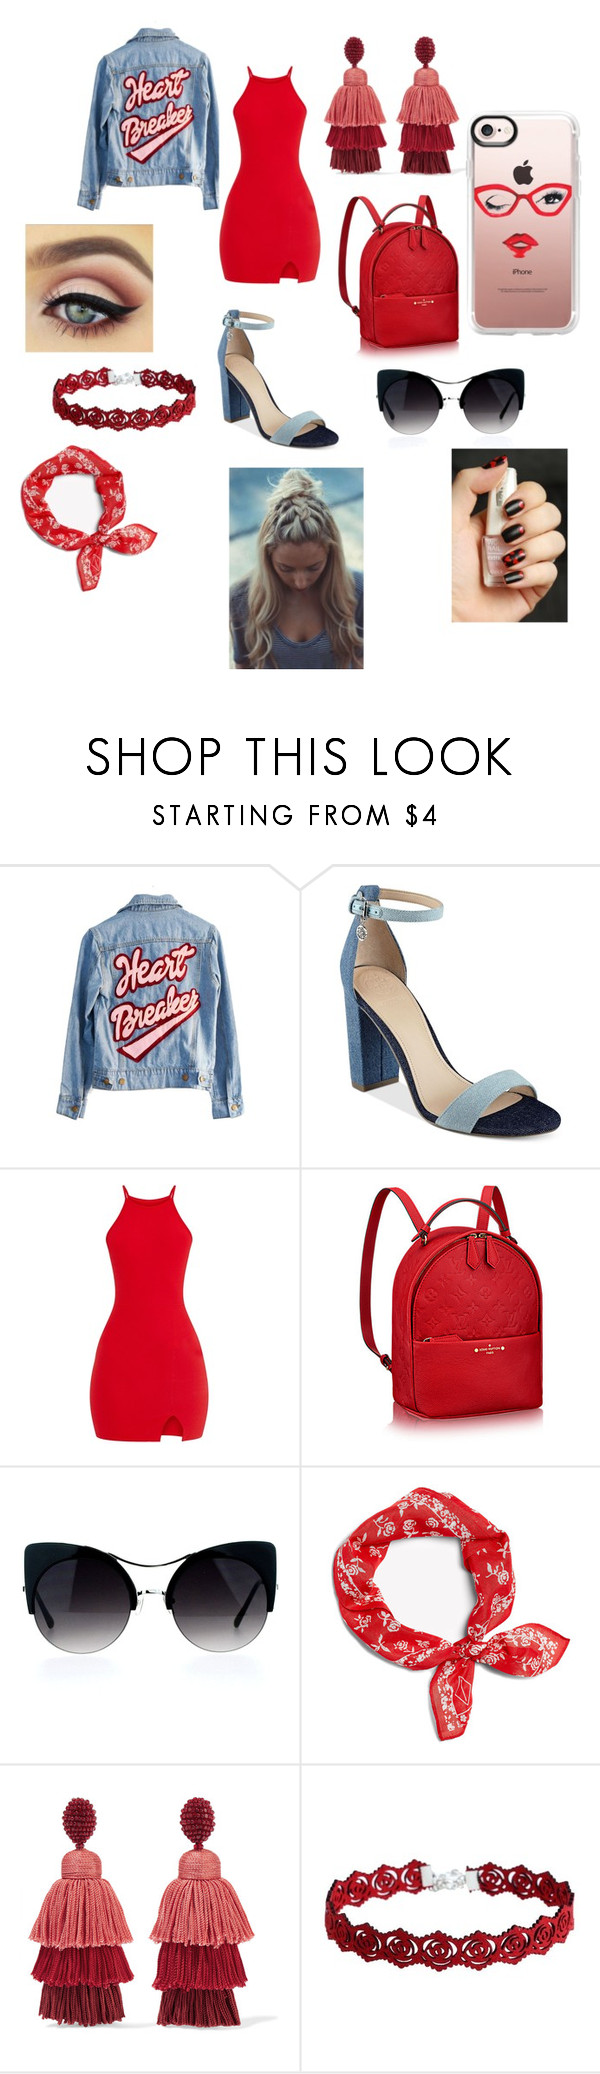 """""""Watch your HEART"""" by taco-lambert ❤ liked on Polyvore featuring High Heels Suicide, GUESS, rag & bone, Oscar de la Renta and Casetify"""